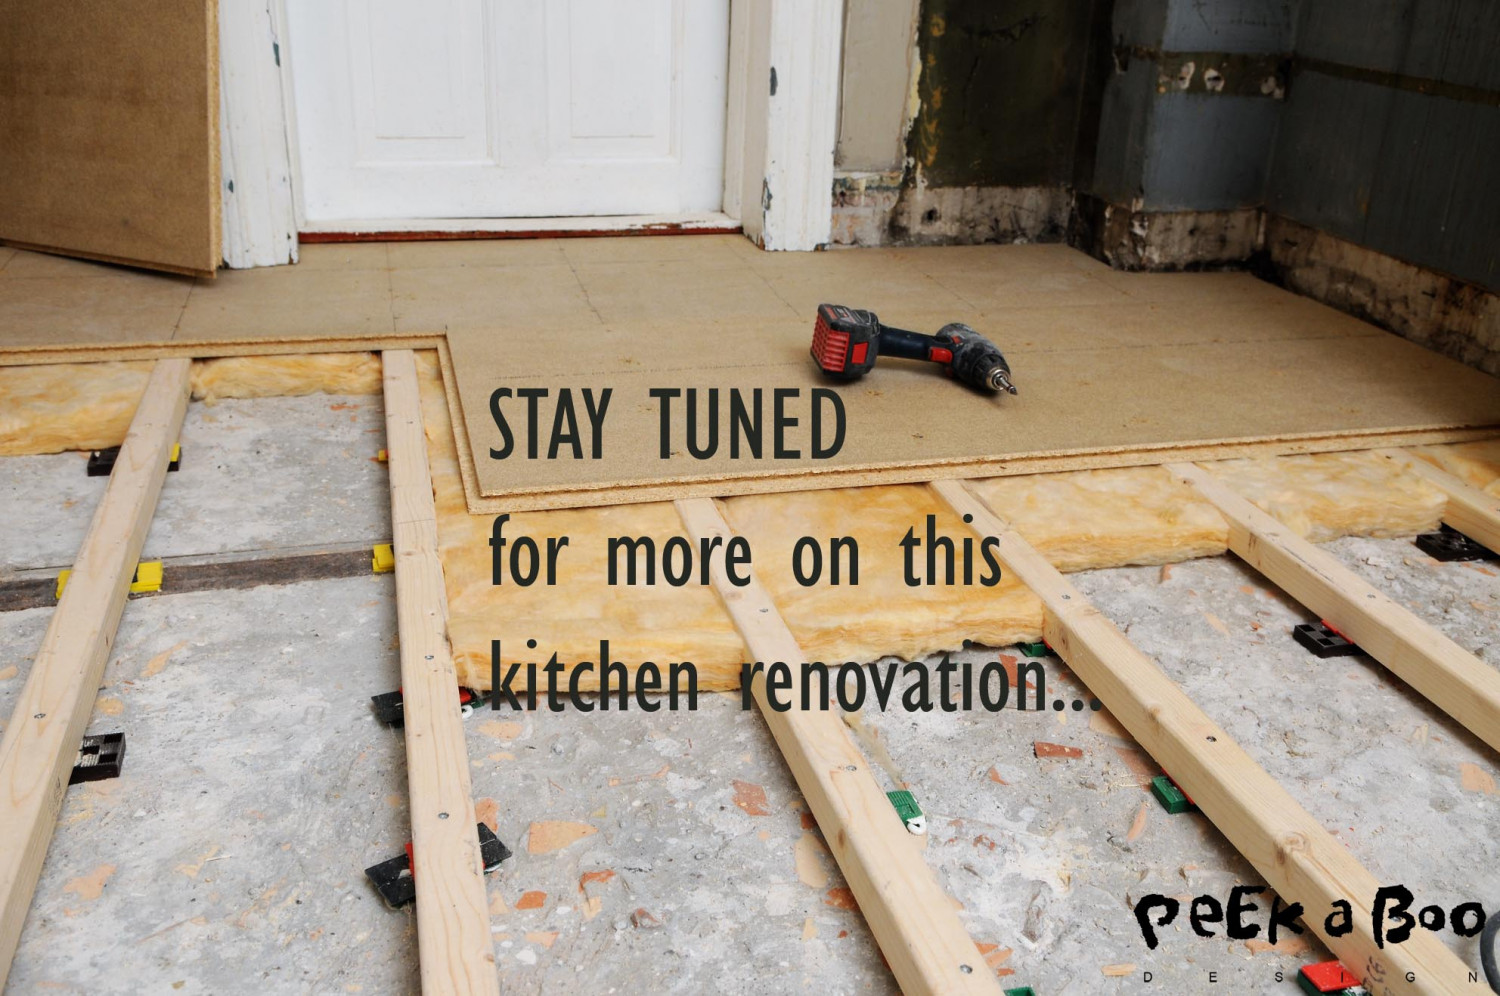 Stay tuned for the next part of this kitchen renovation...